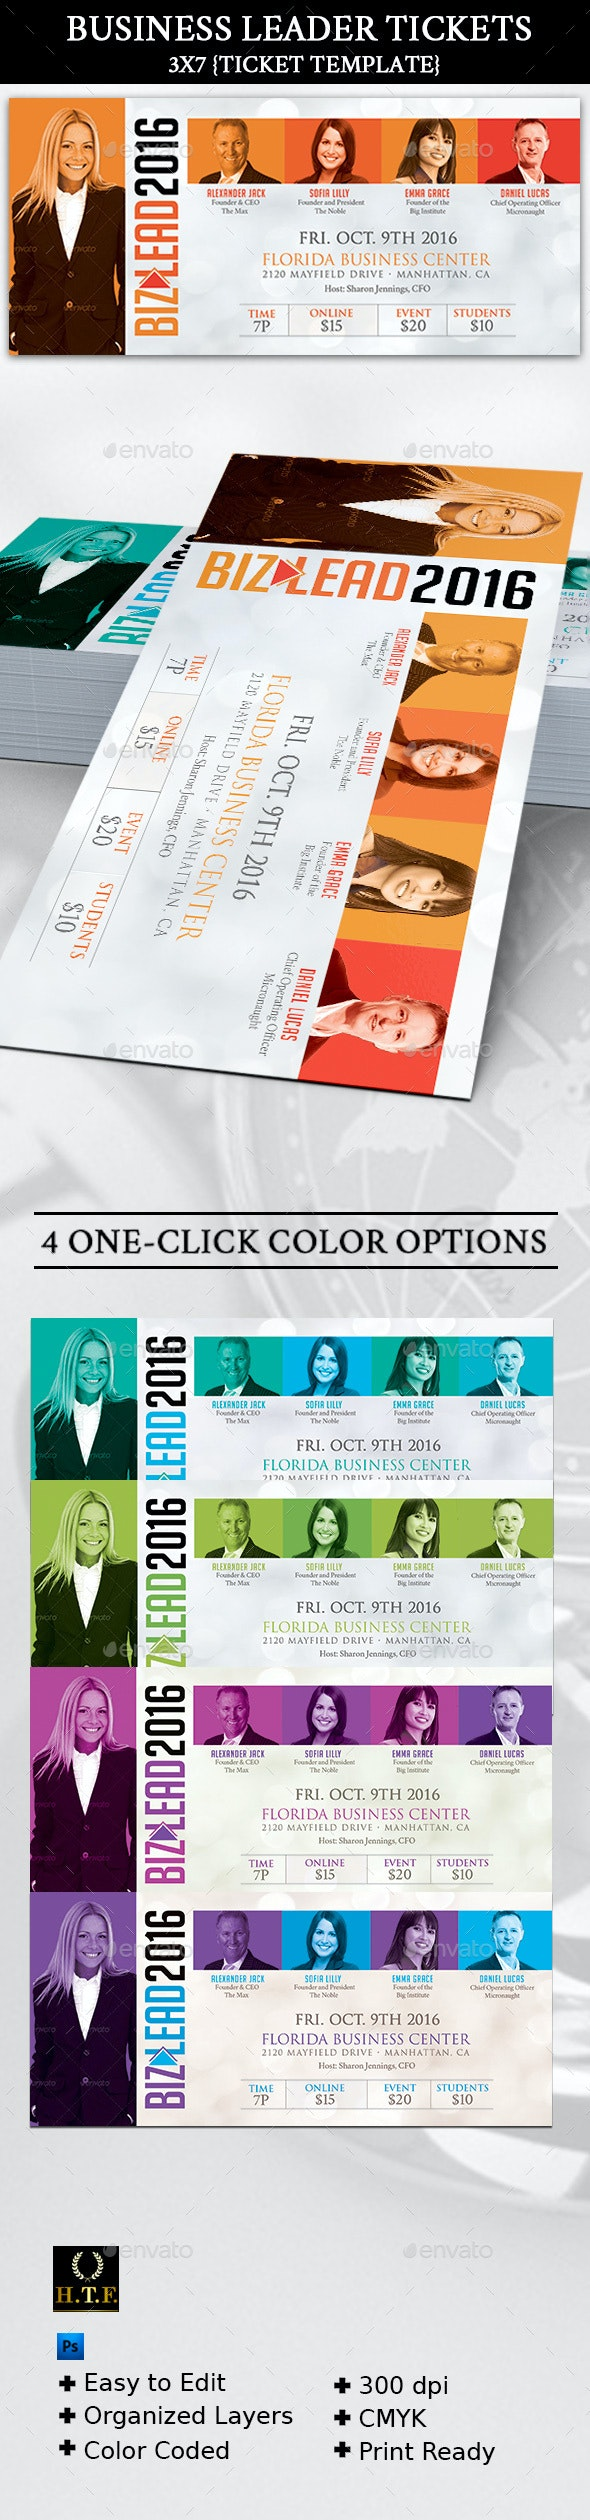 Business Leader Ticket - Corporate Business Cards